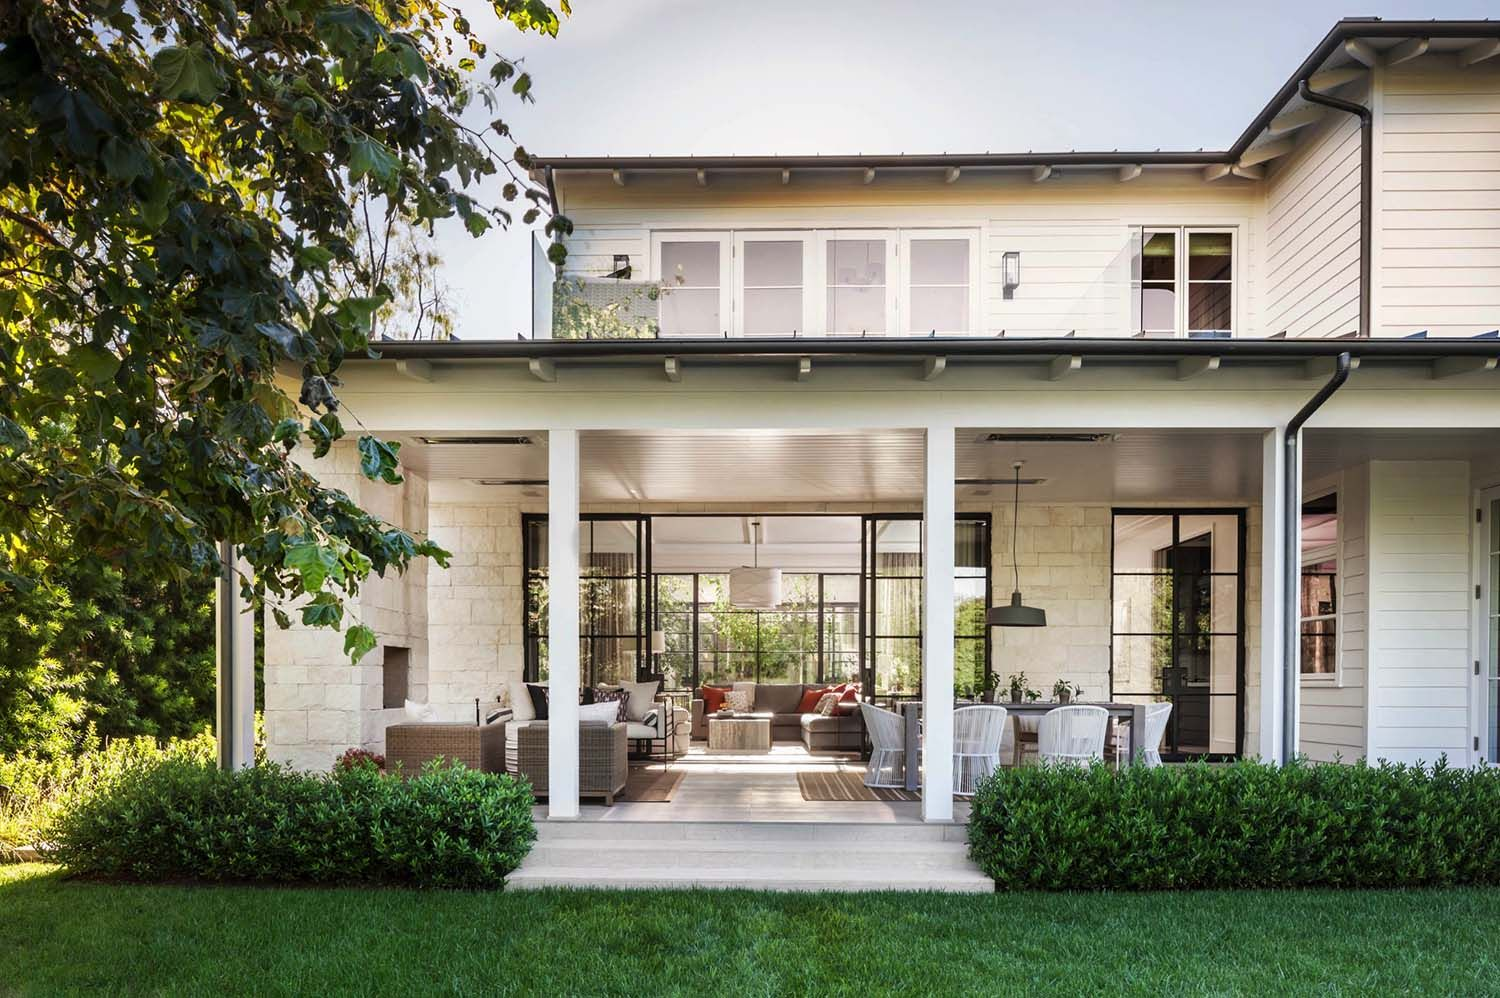 A pacific palisades home was designed by studio william hefner along with annette english associates infused with transitional and modern elements